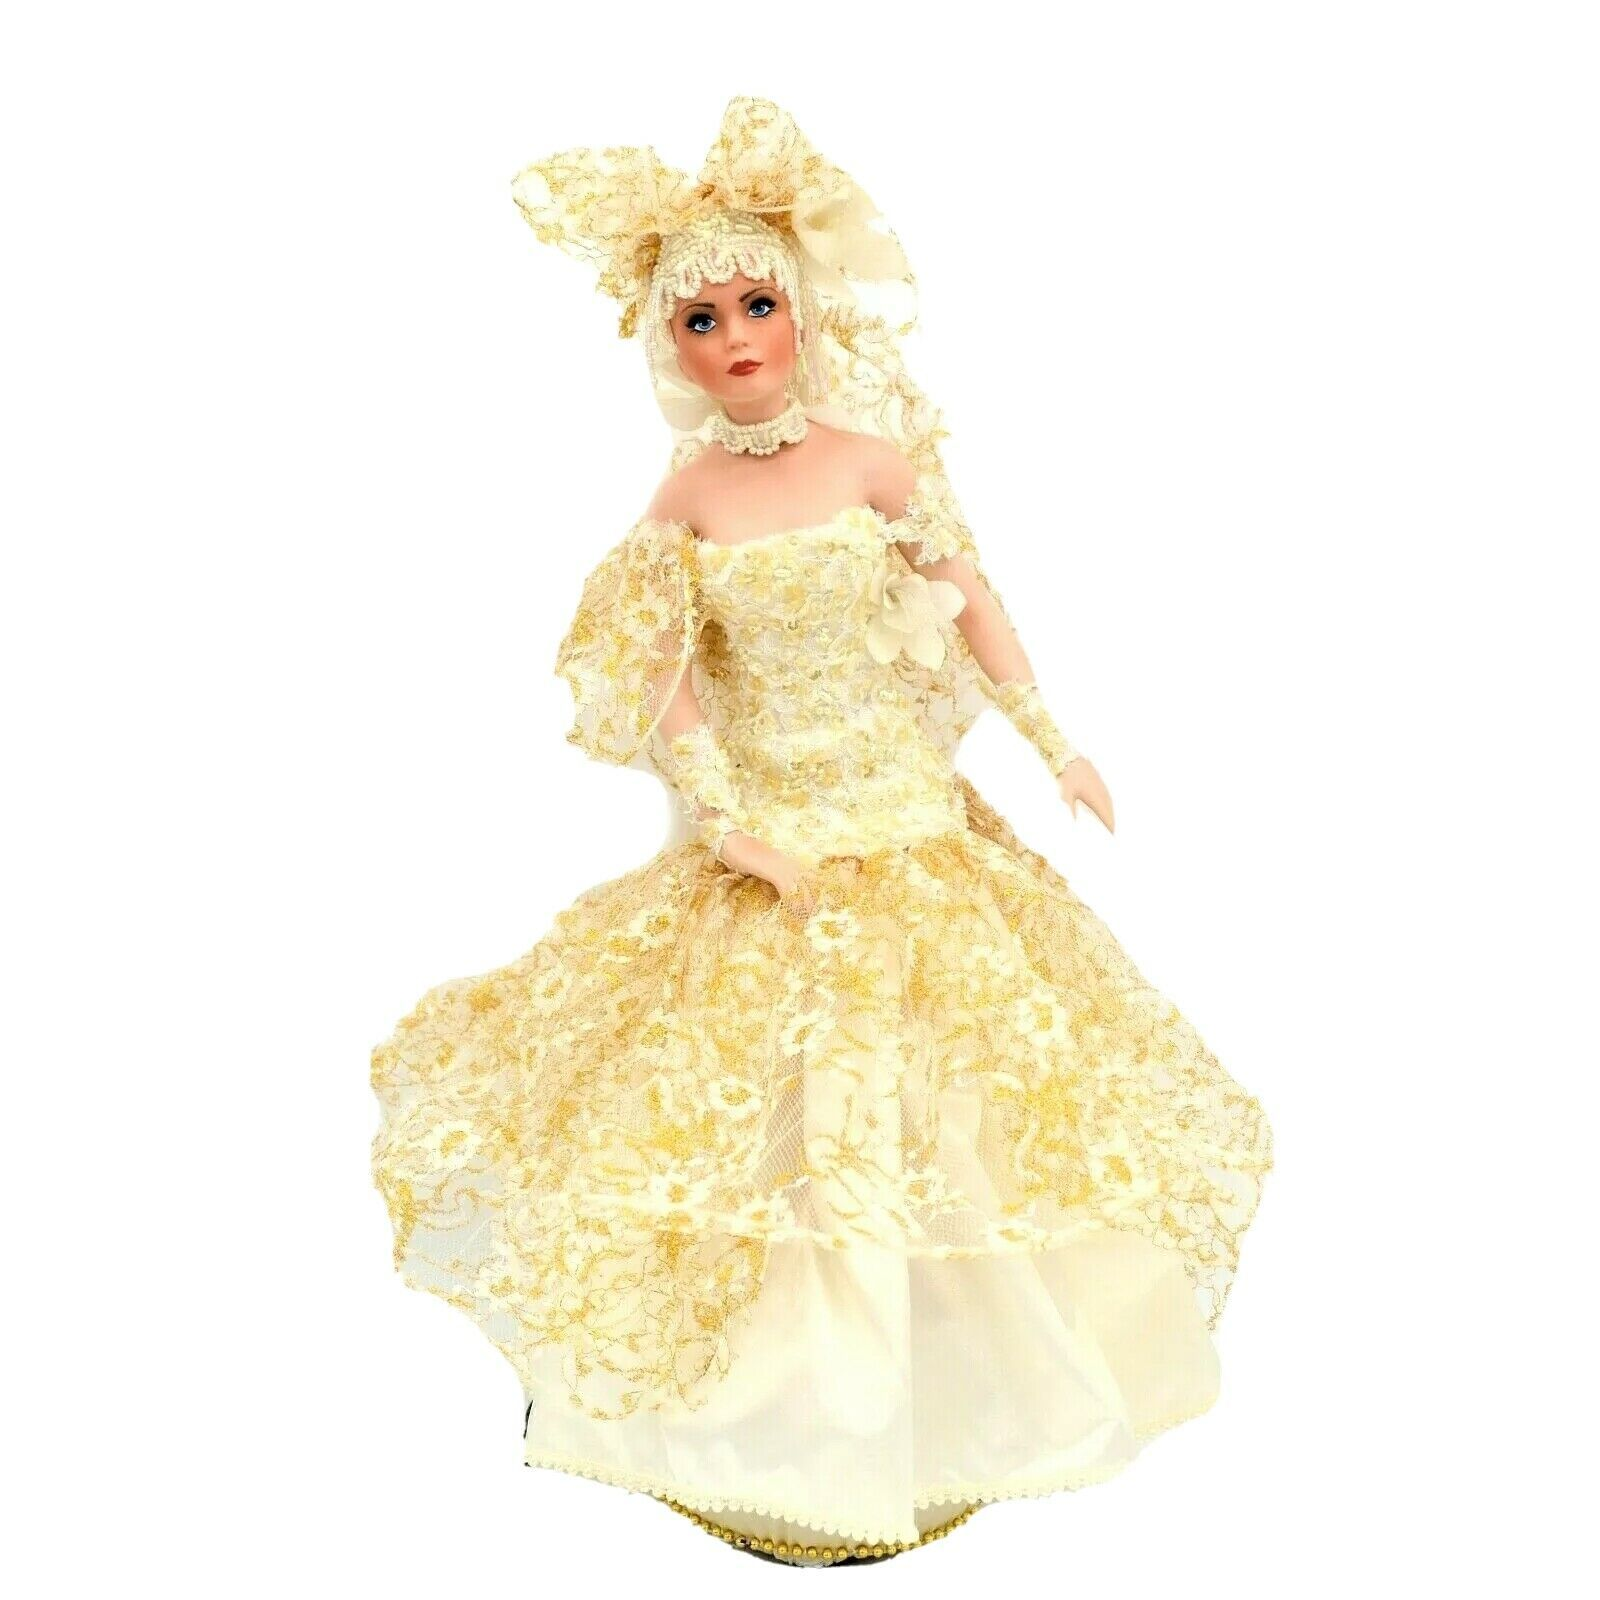 Primary image for Vintage Rustie Fiber Optic Elegant Full Body Light Up Doll Satin Covered Base